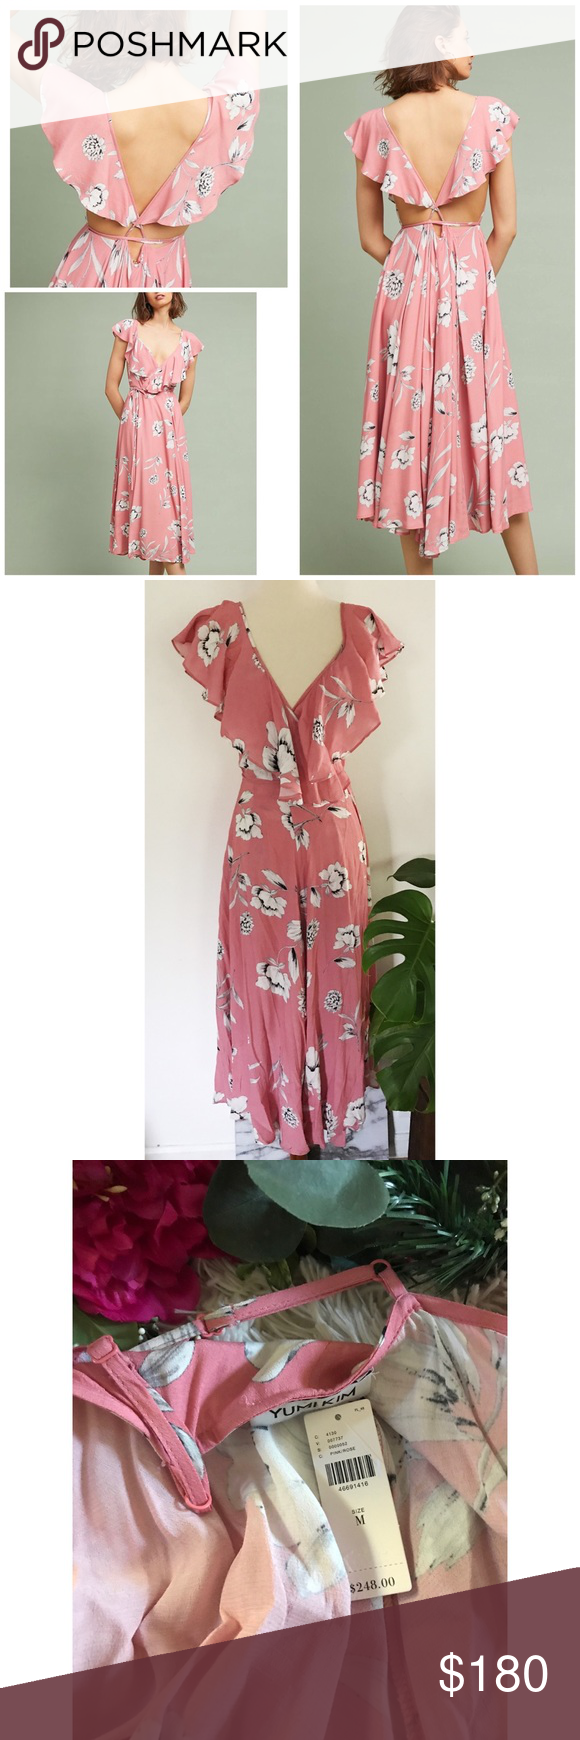 Nwt Yumi Kim Floral Flutter Darby Pink Wrap Dress New With